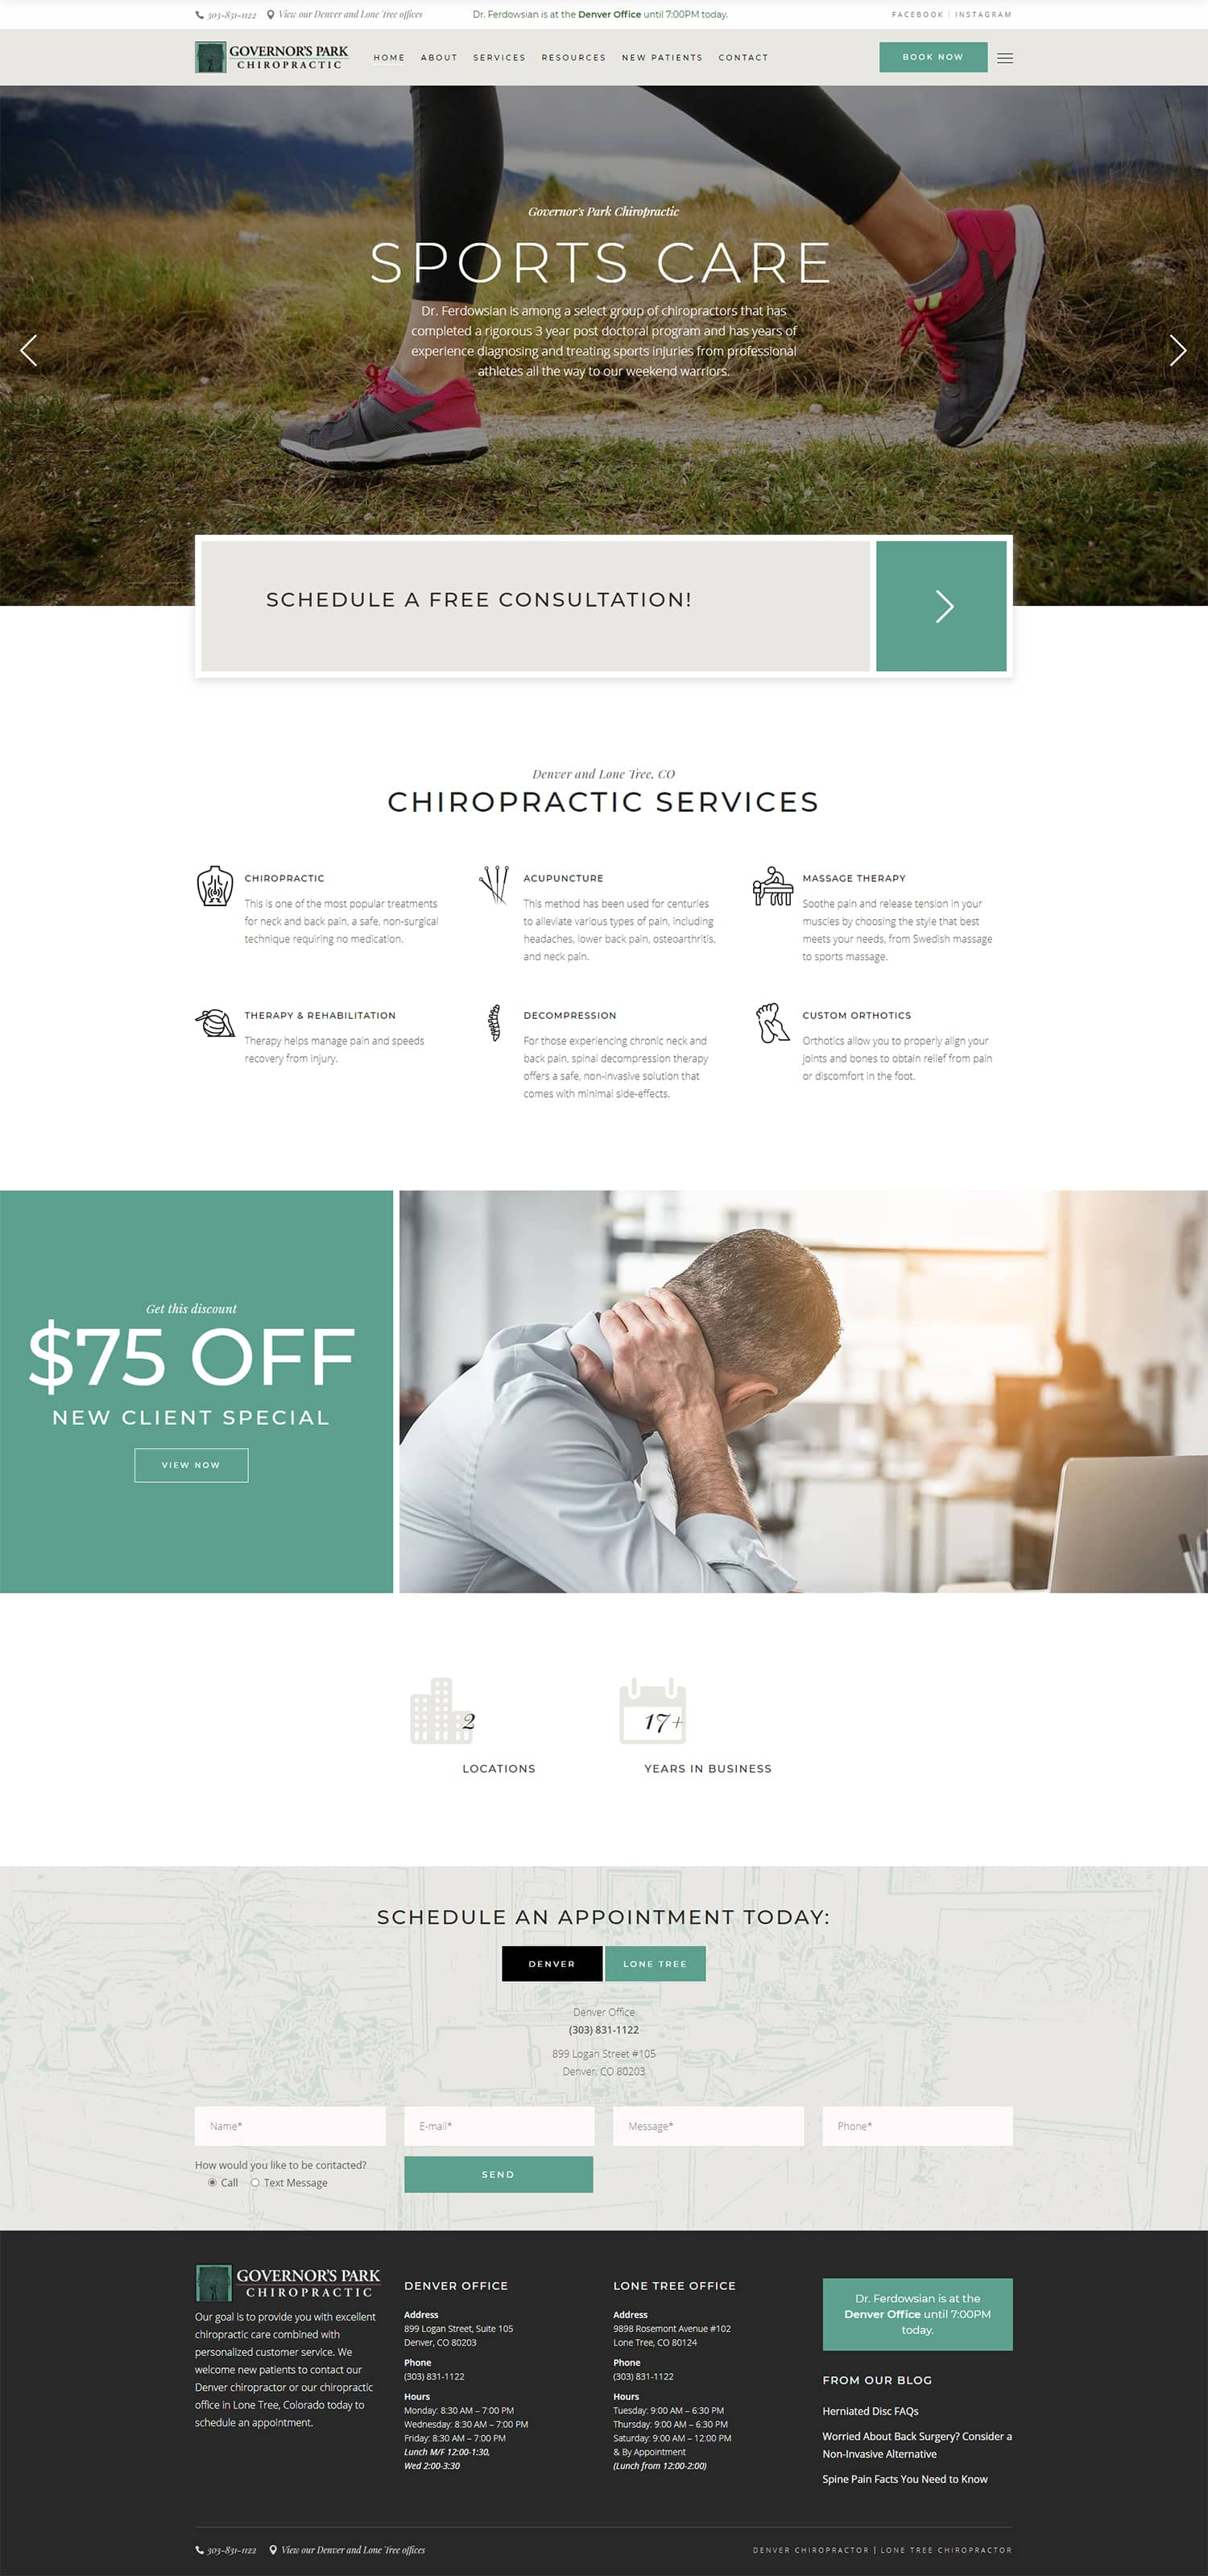 governors park chiropractic full site 1